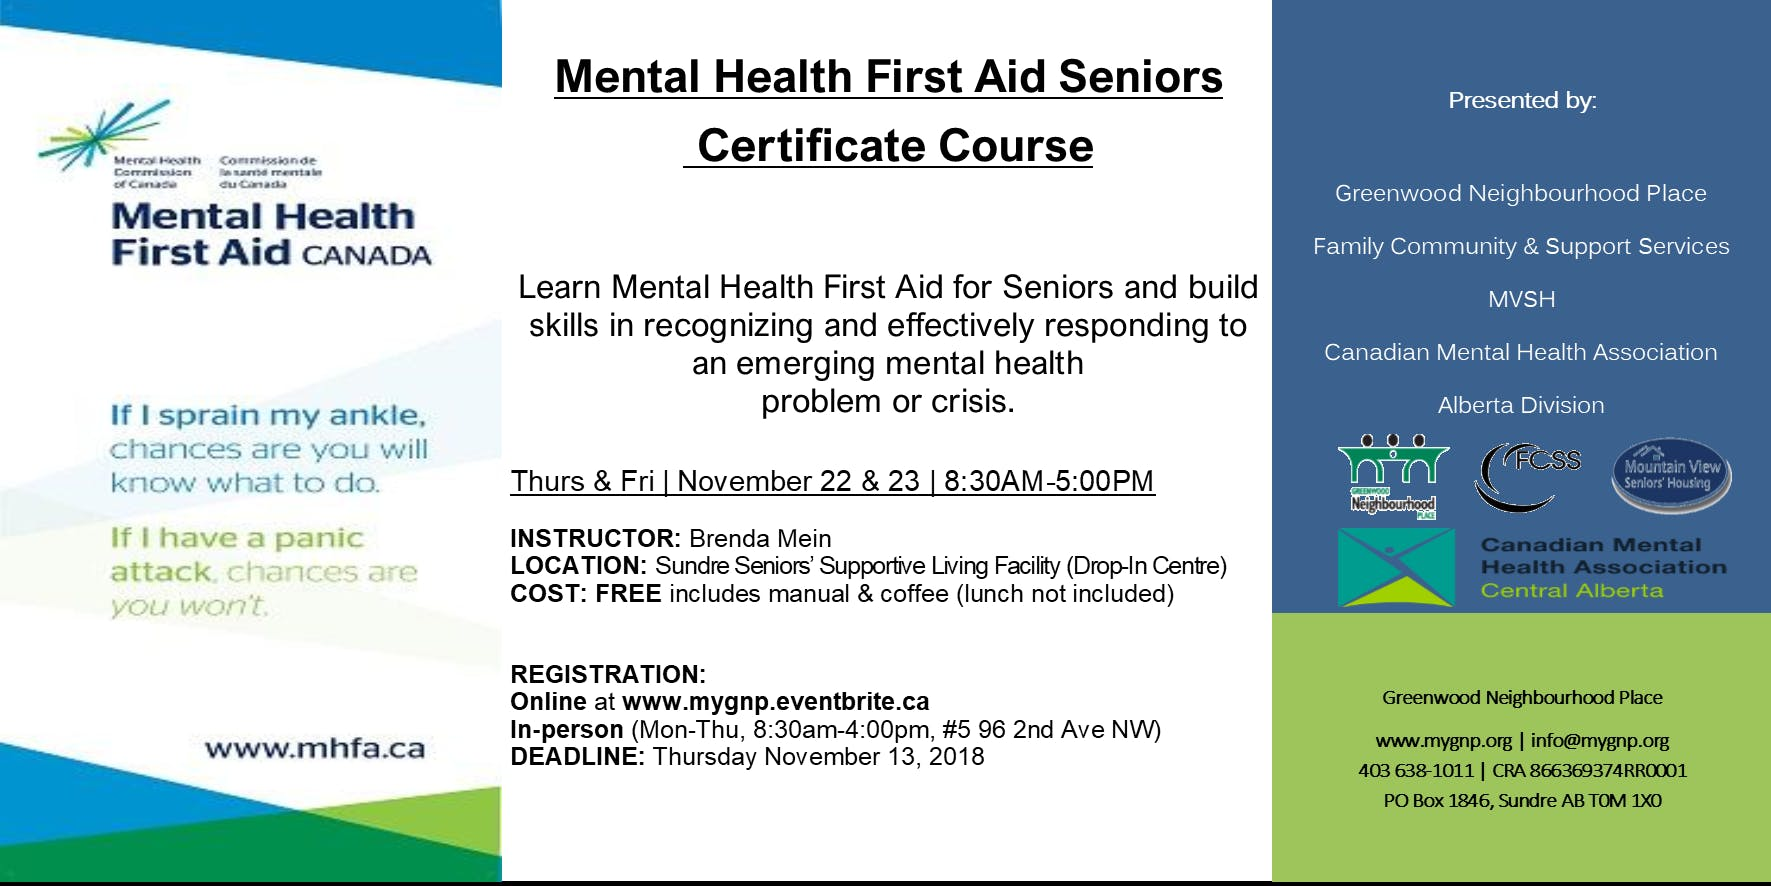 Mental Health First Aid Seniors Certificate Course At Sundre Seniors